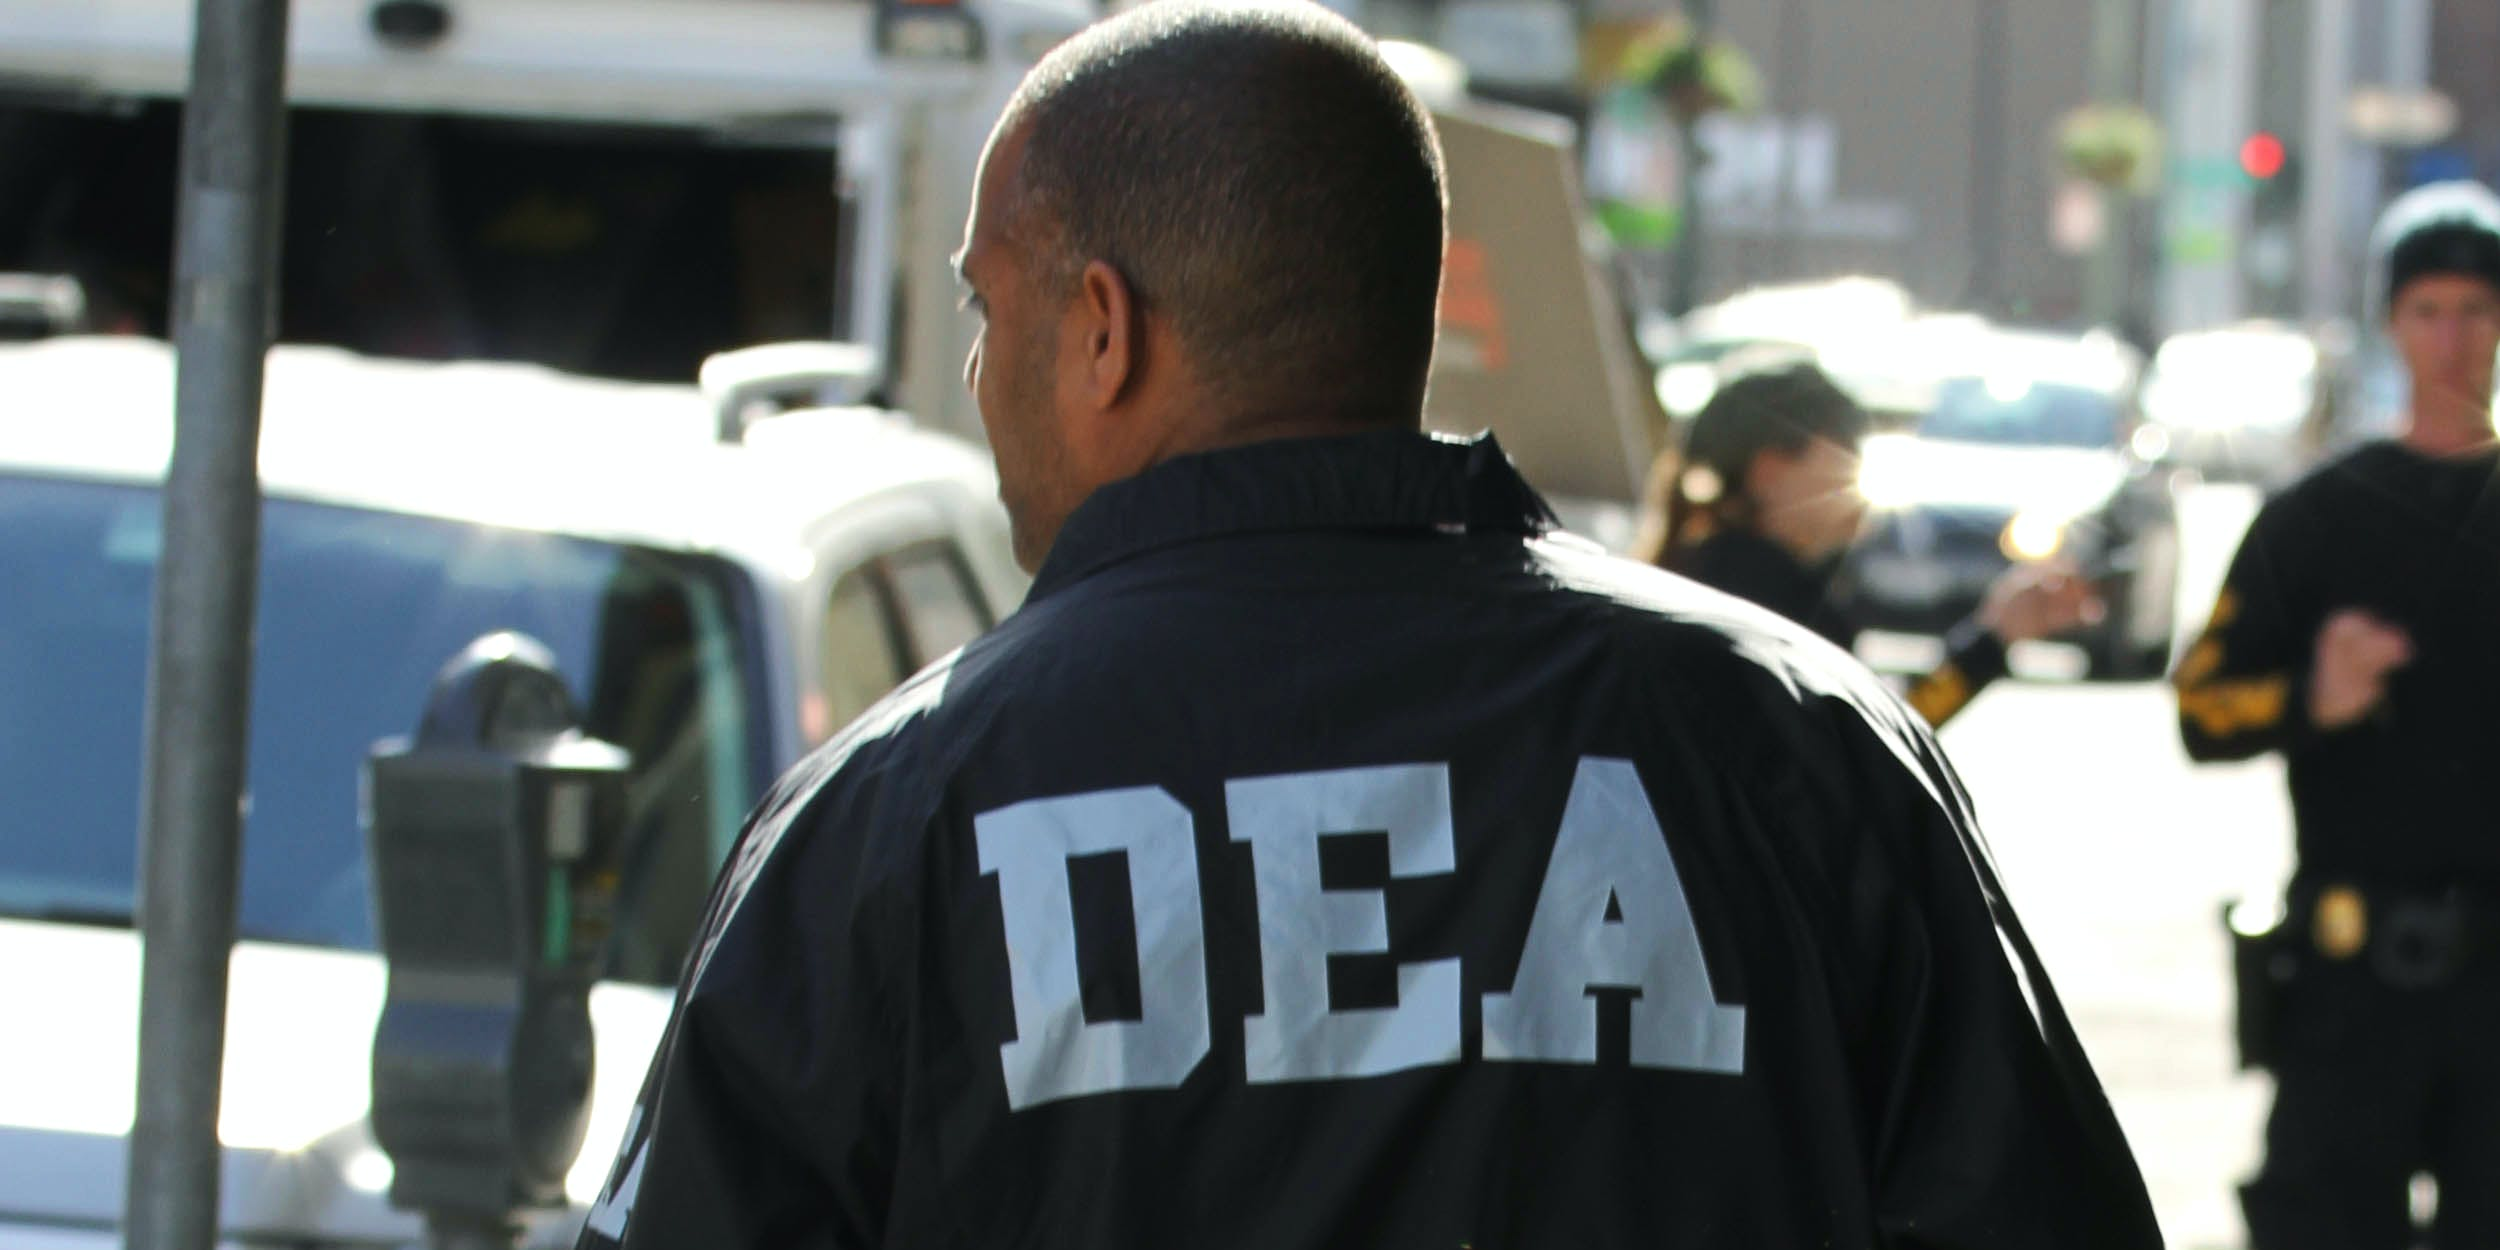 DEA agent stands with back to camera, DEA white lettering visible on jacket